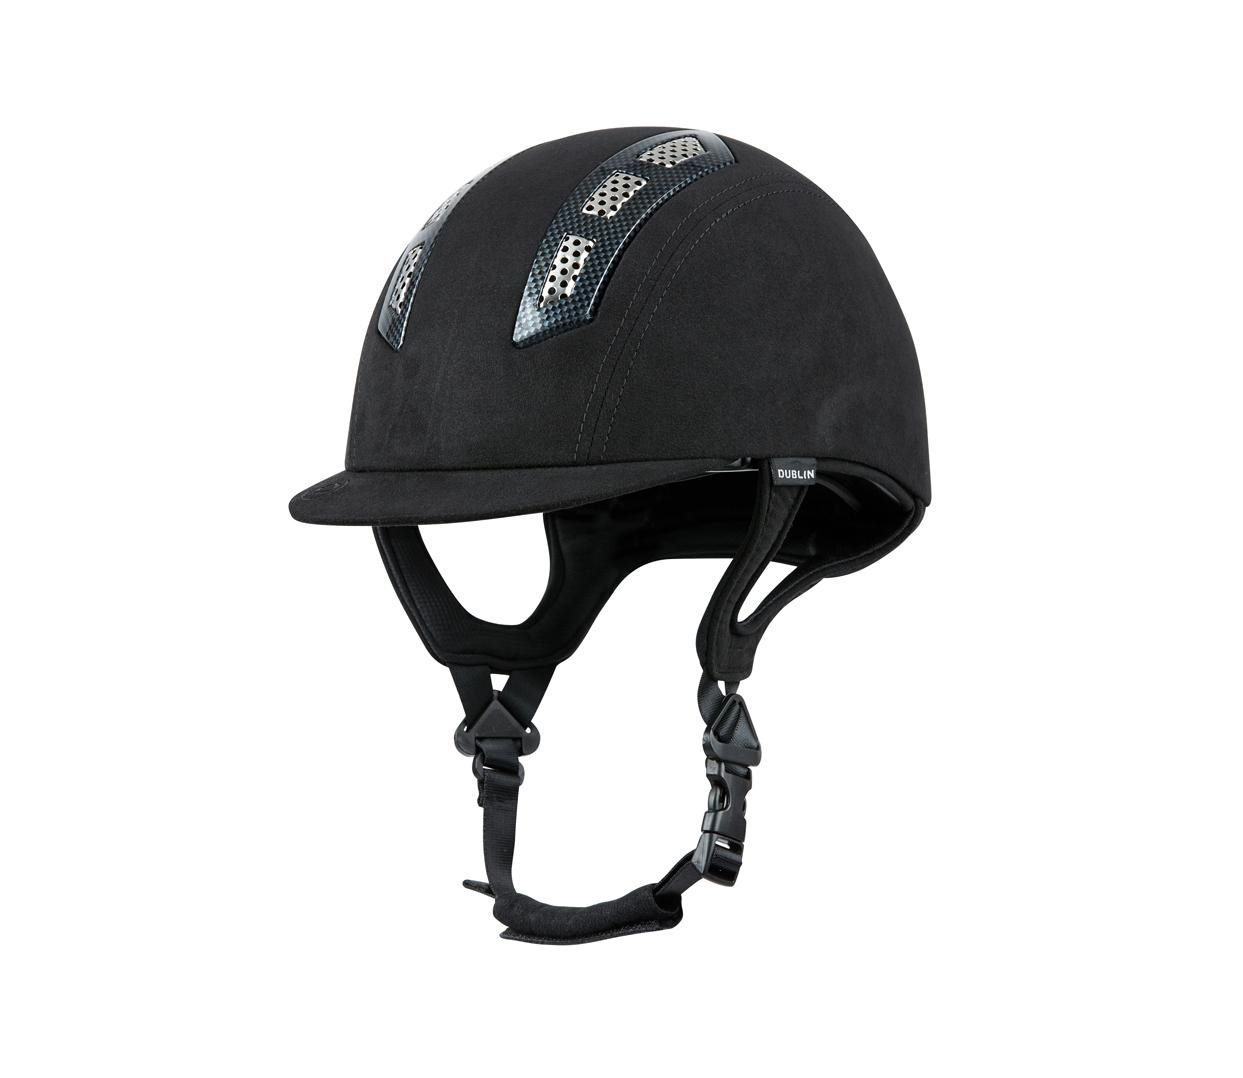 Silverline Arista Helmet